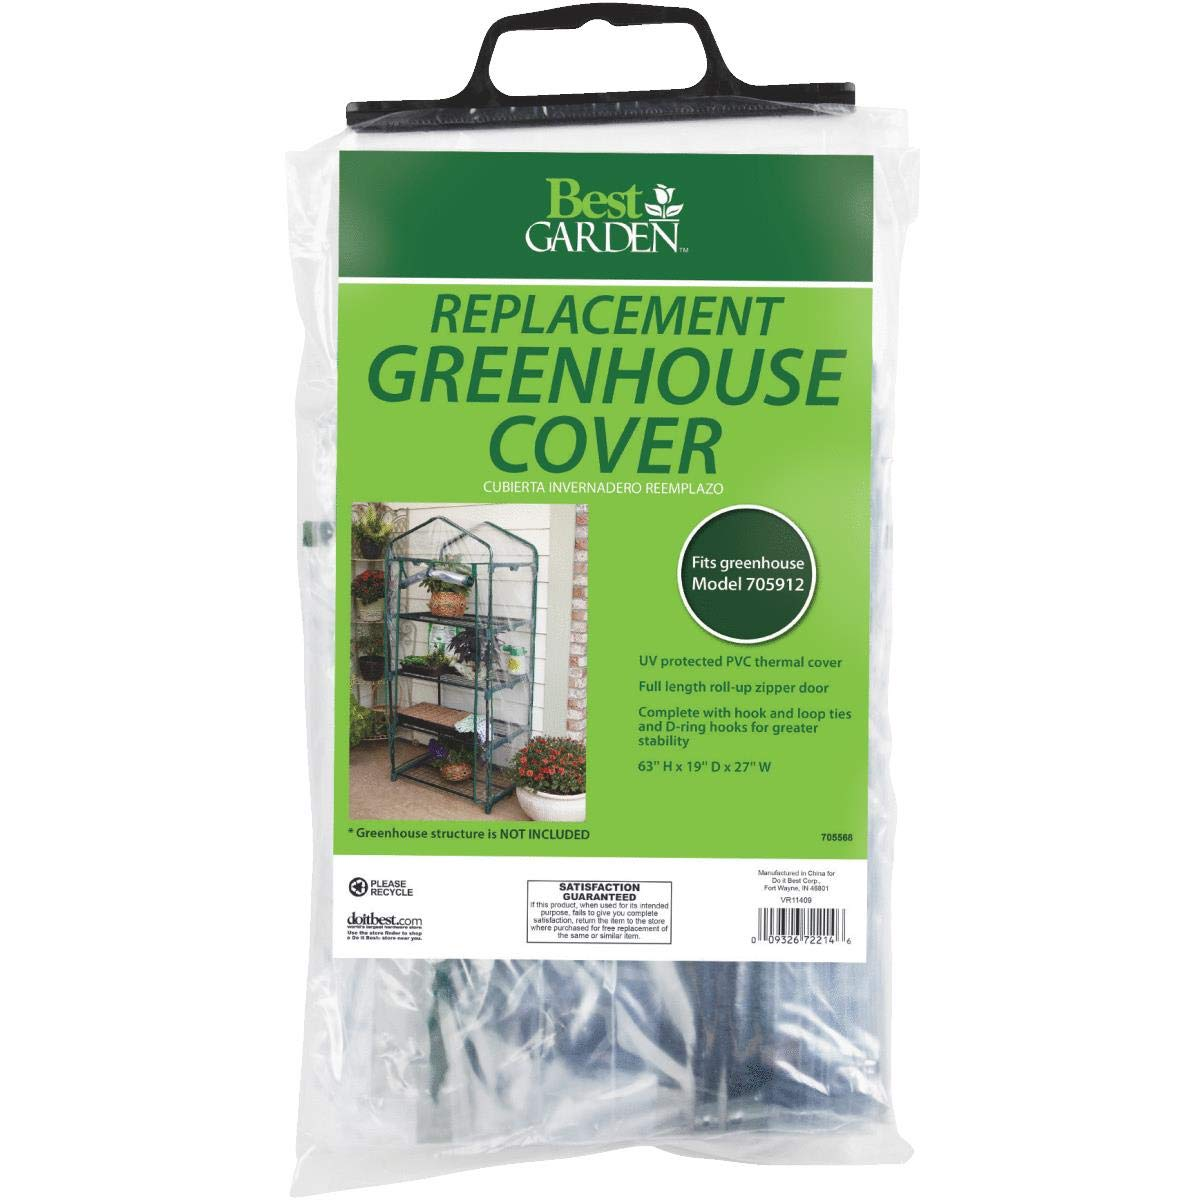 Sim Supply, Inc. Best Garden Replacement Cover for Greenhouse - 1 Each by Sim Supply, Inc. (Image #1)